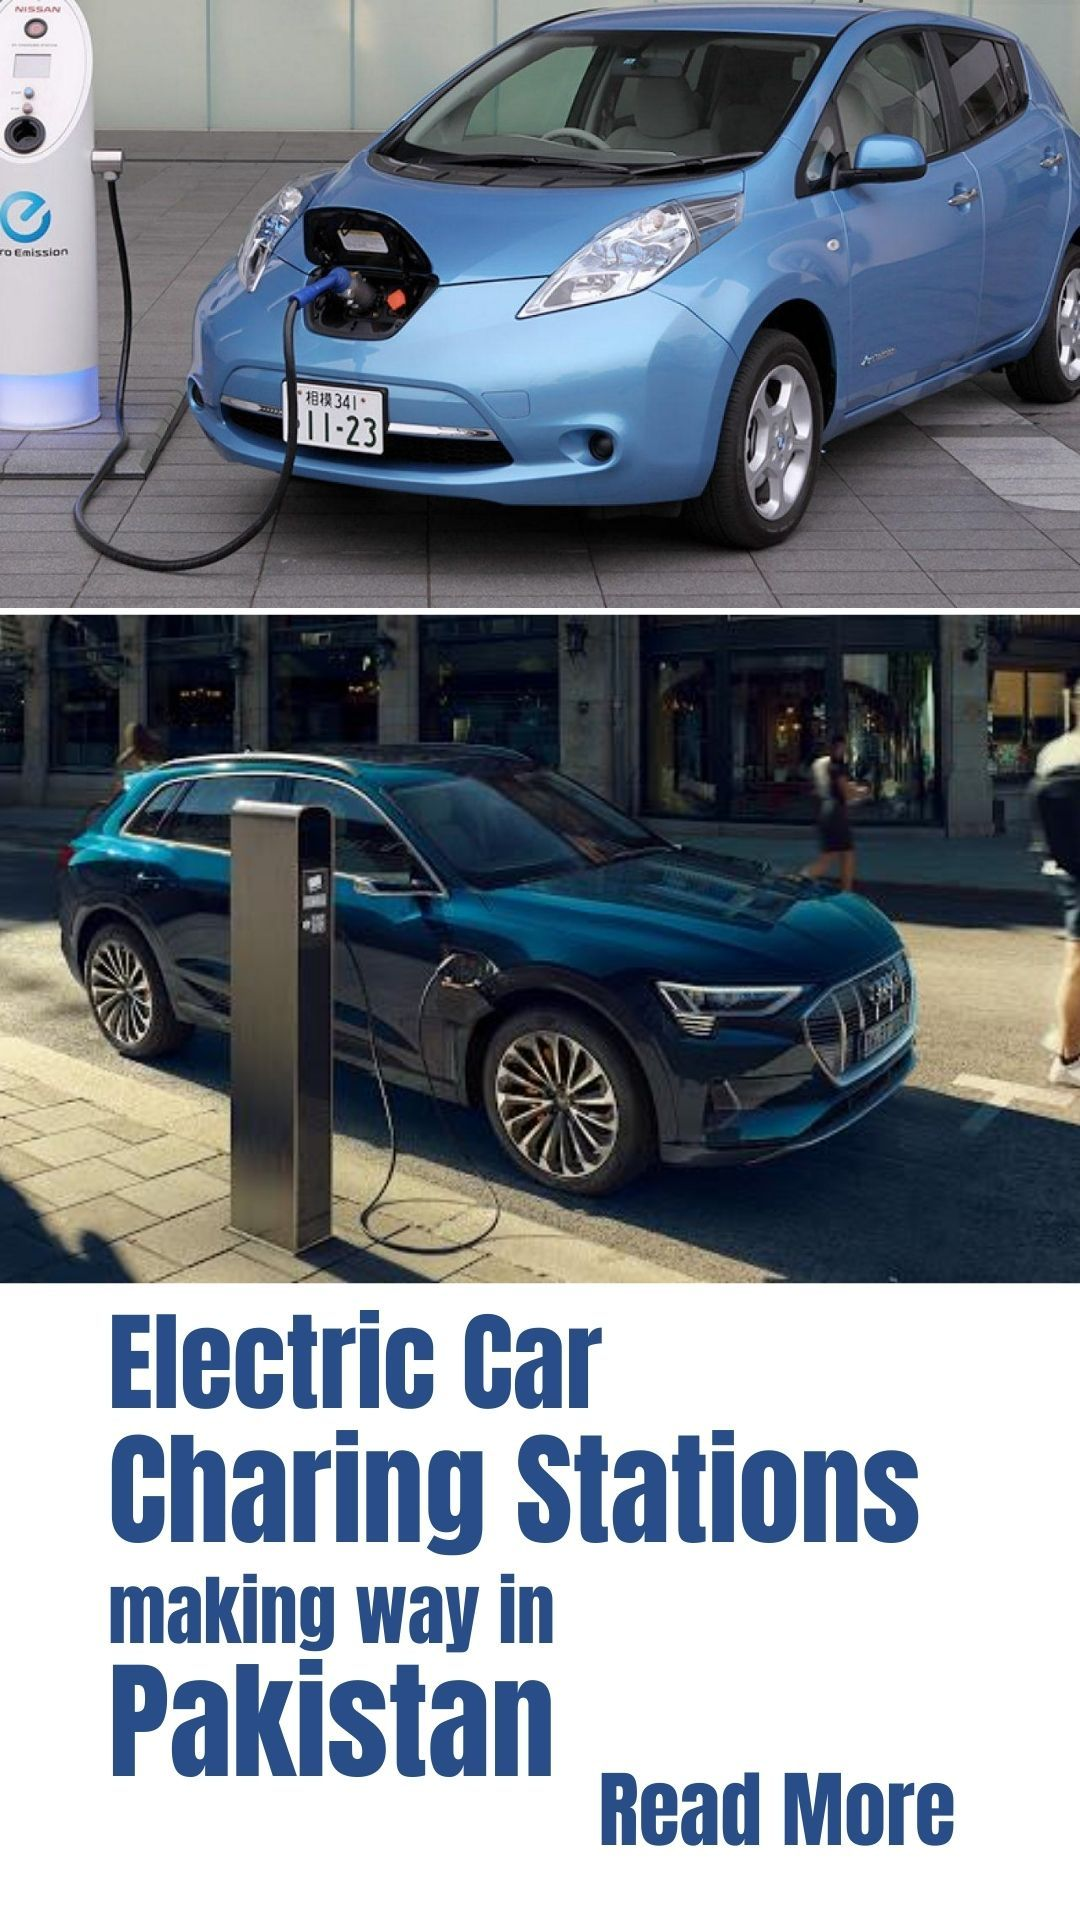 Fawad Chaudhry recently revealed in a tweet that the government is going to launch their first Electric Car charging station in Islamabad  #technology #electriccar #vehical #toyota #hyundai #chargingstation #pakistan #fawadchaudhry